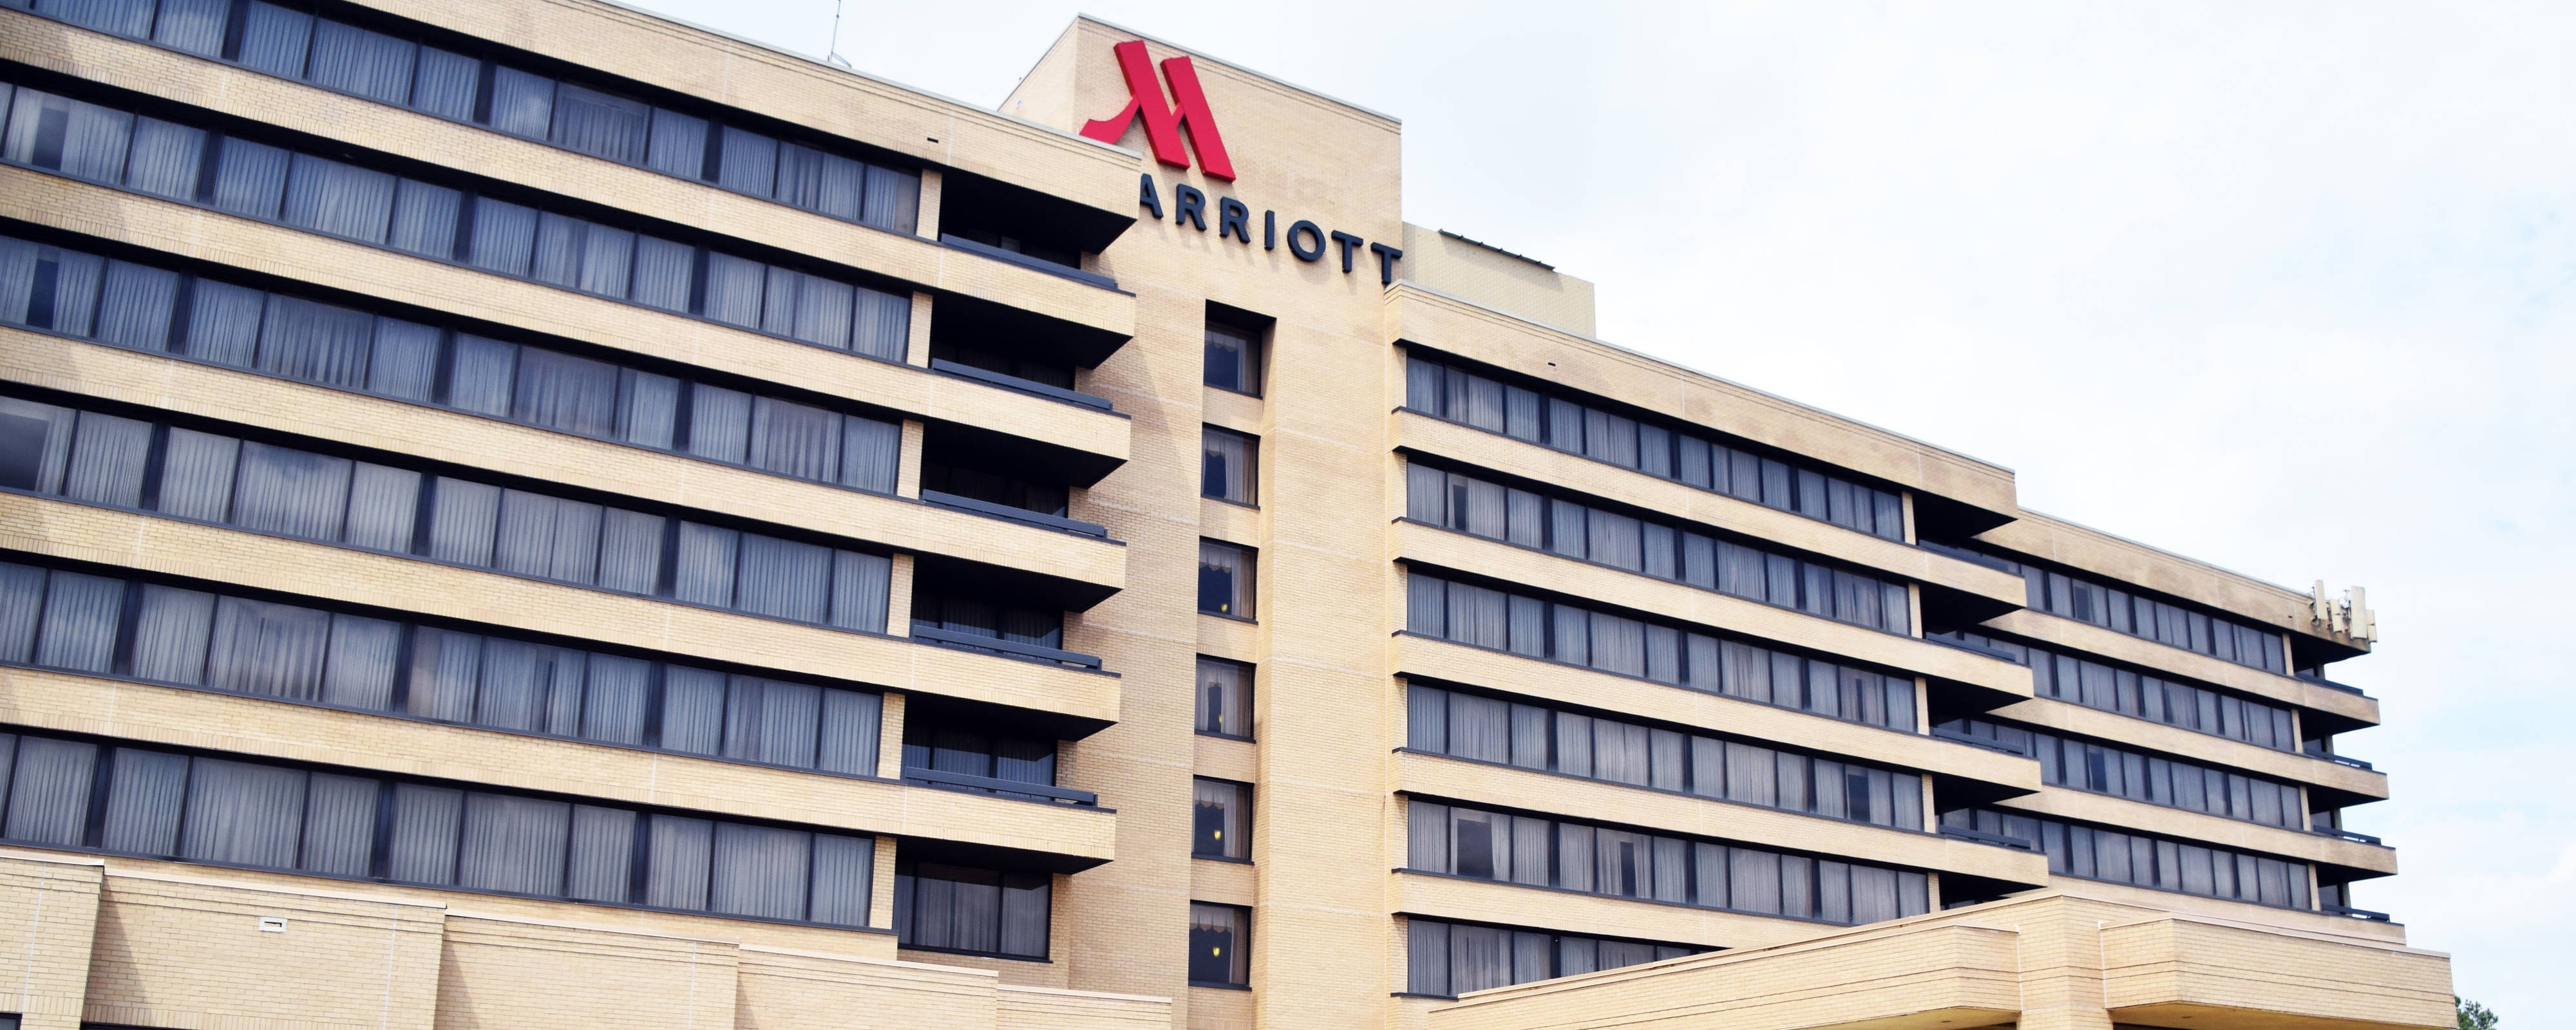 About our Hotel Huntsville Marriott Services